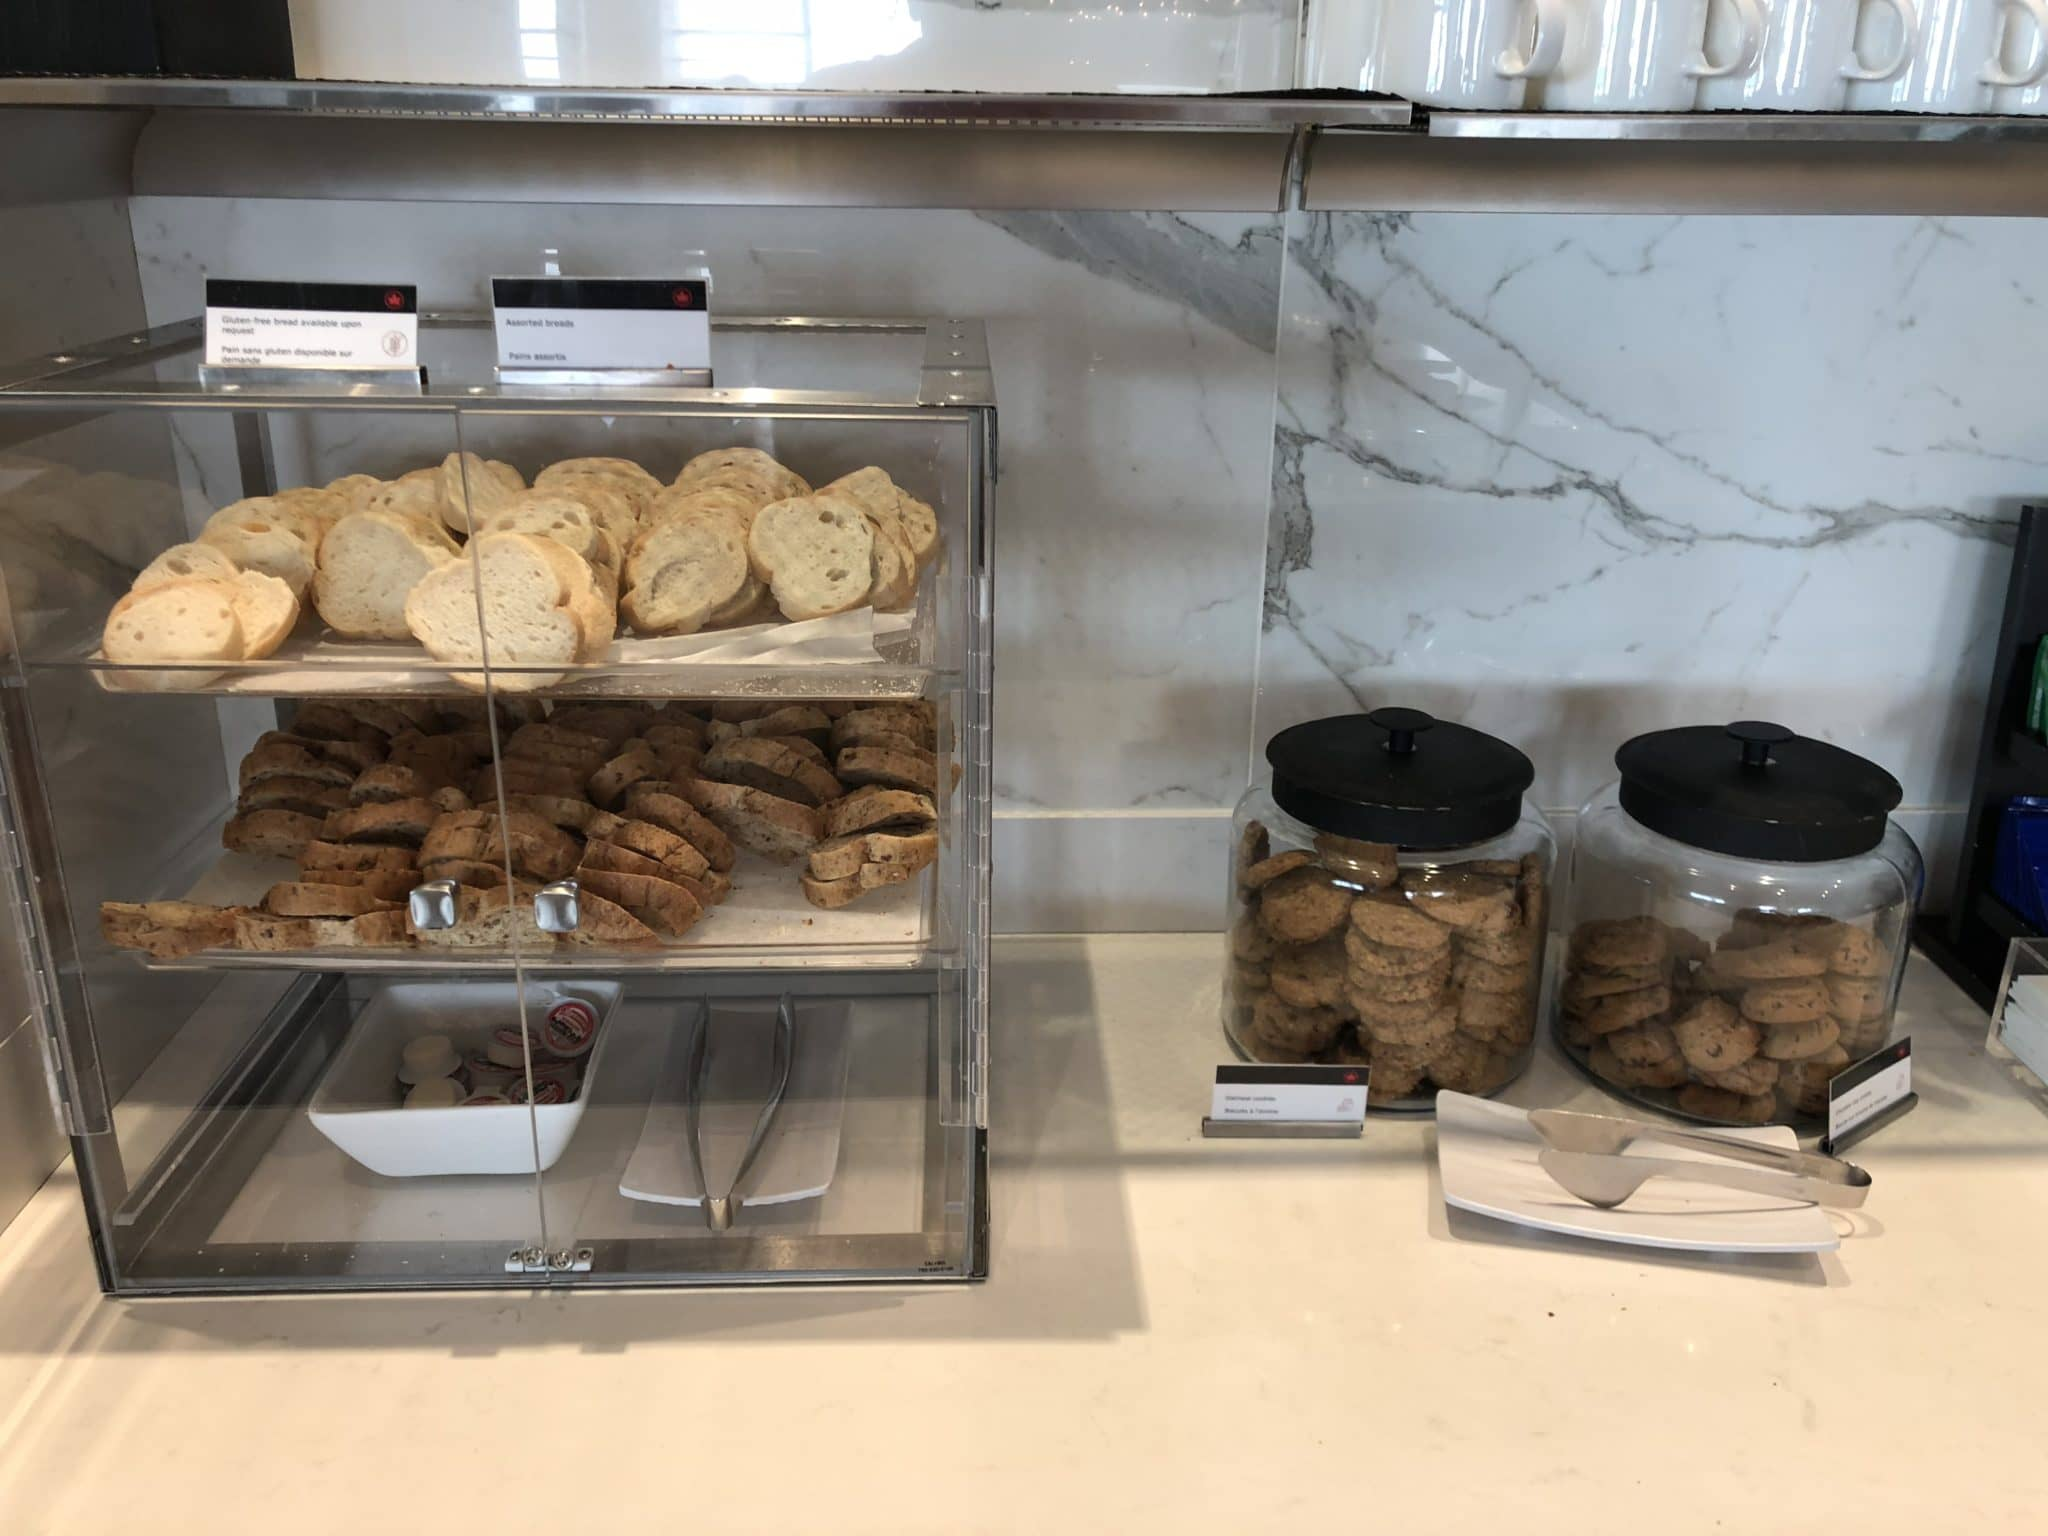 Air Canada Maple Leaf Lounge Vancouver Brot und Cookies